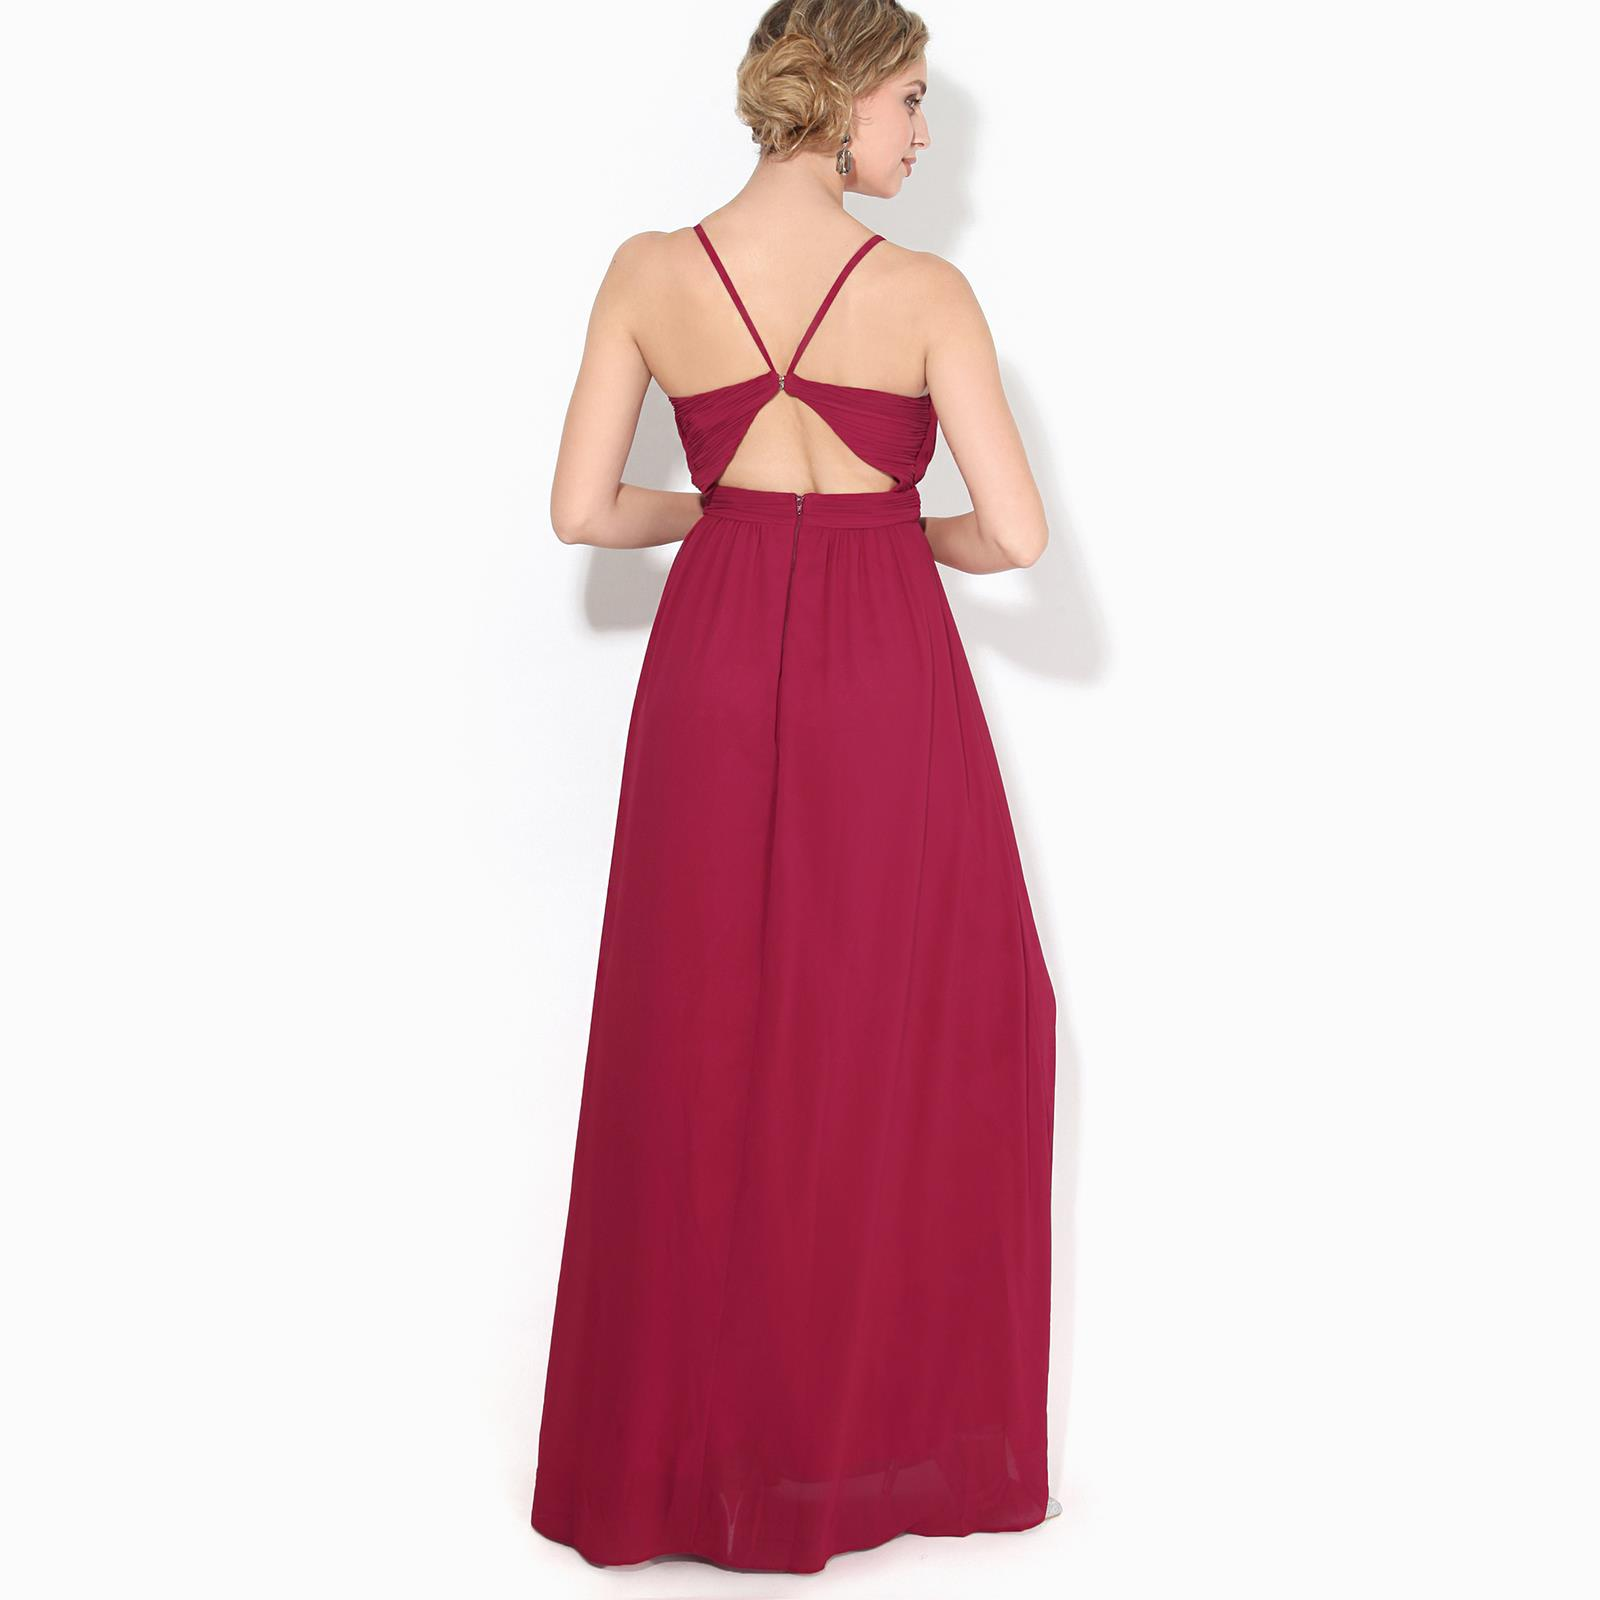 Womens-Ladies-Strappy-Maxi-Dress-Formal-Wedding-Evening-Party-Ball-Gown-Cocktail thumbnail 7